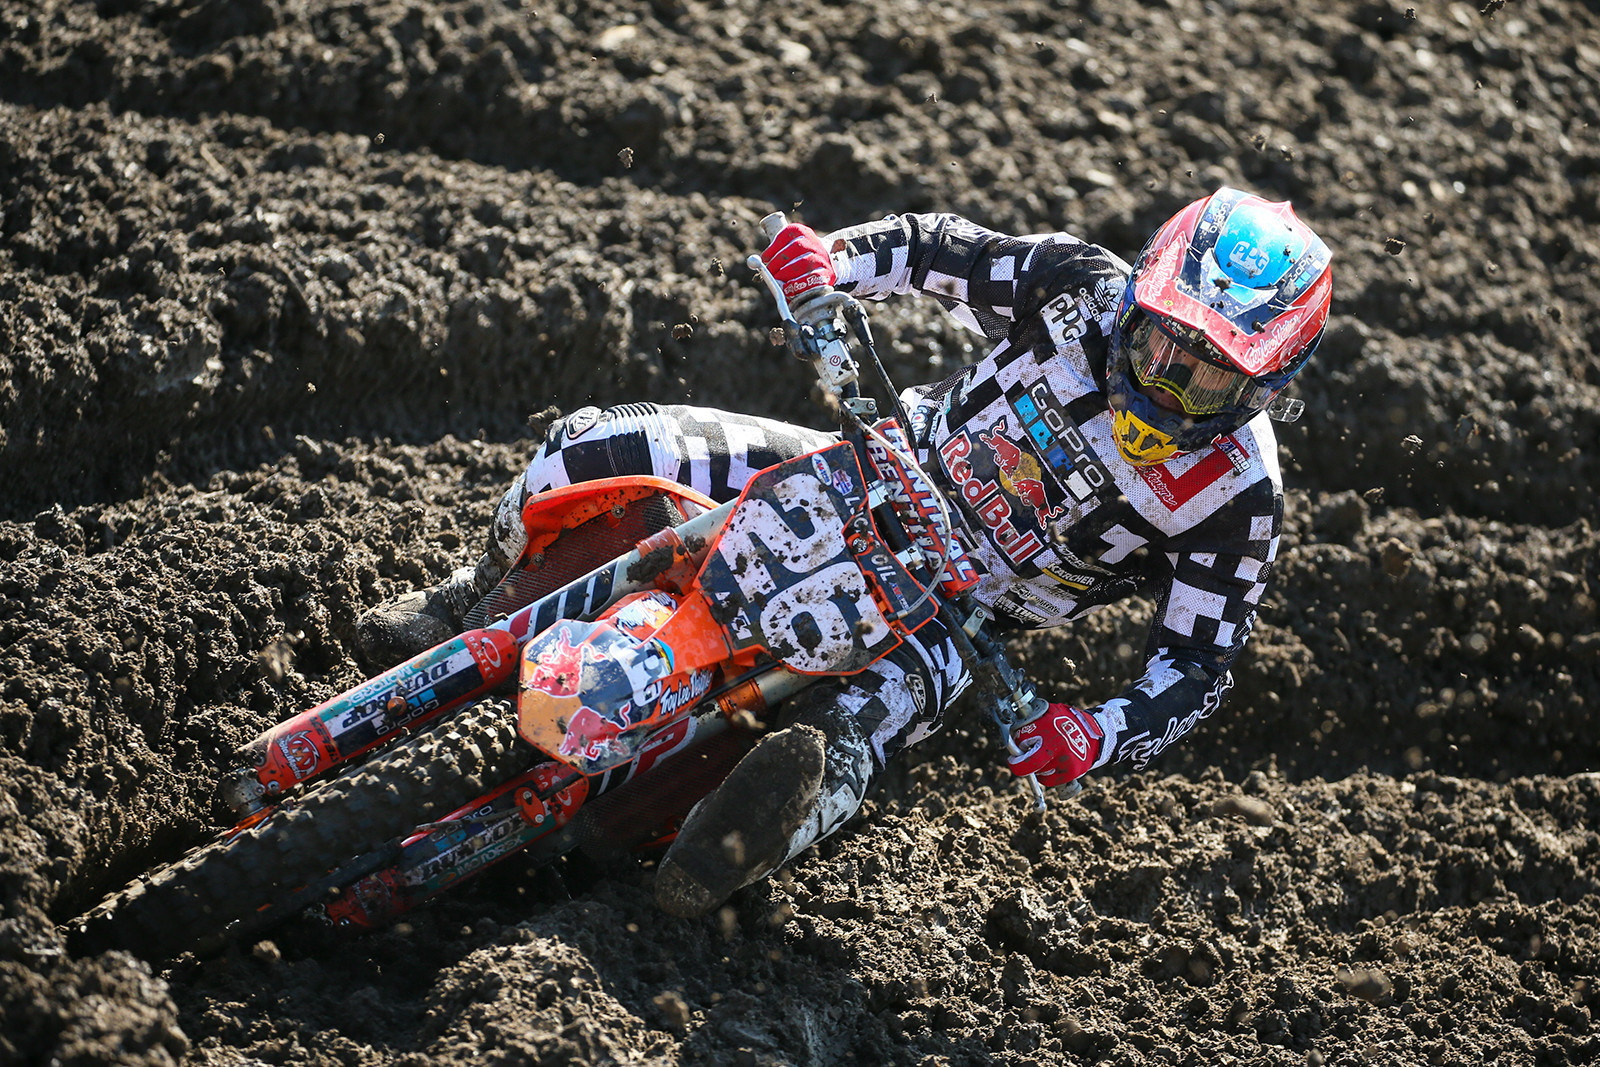 Alex Martin Out for the Remainder of Pro Motocross Season